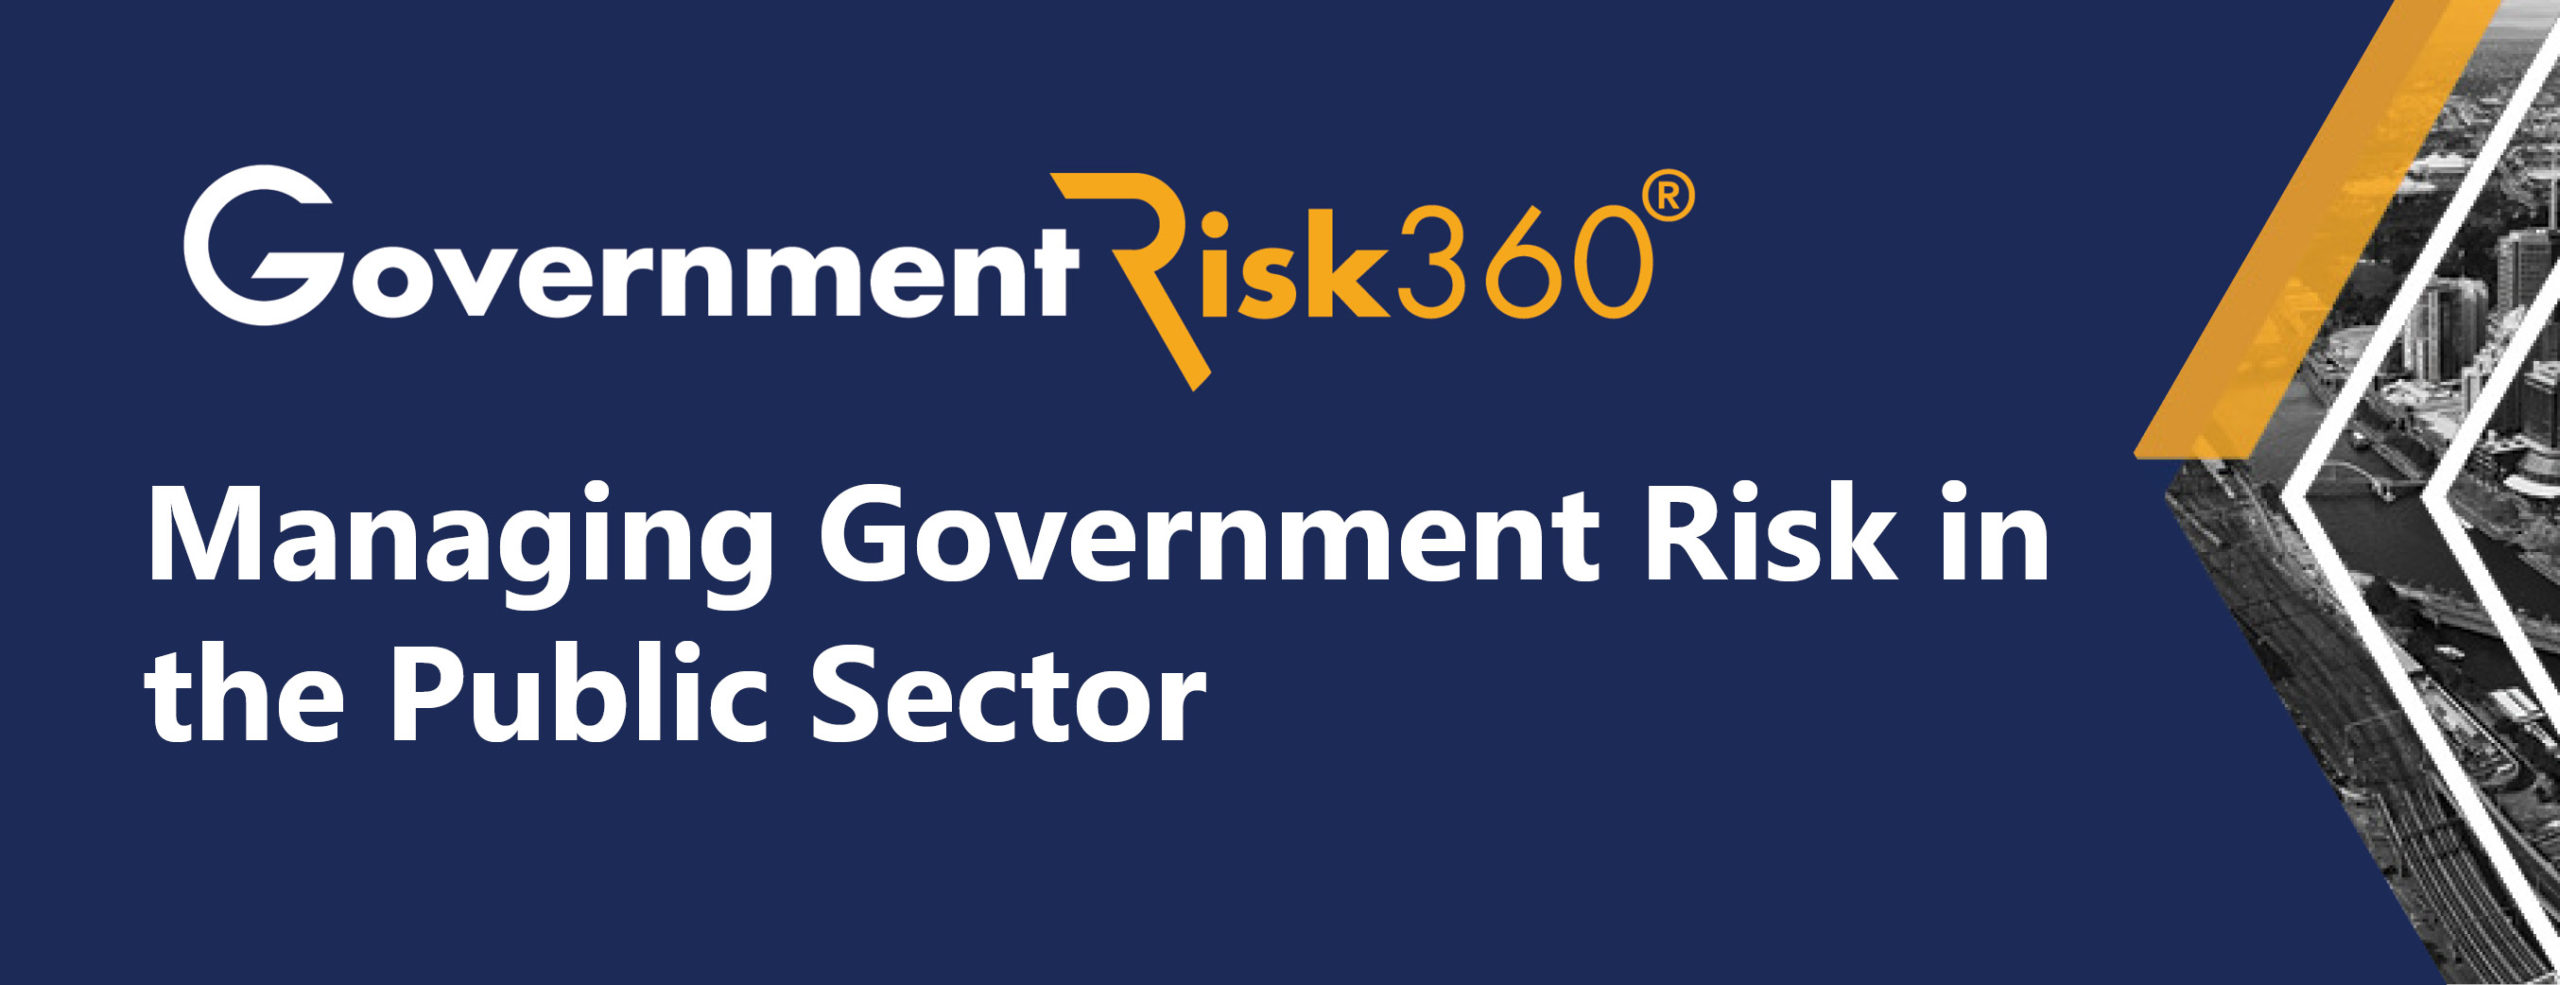 Managing Government Risk in the Public Sector image